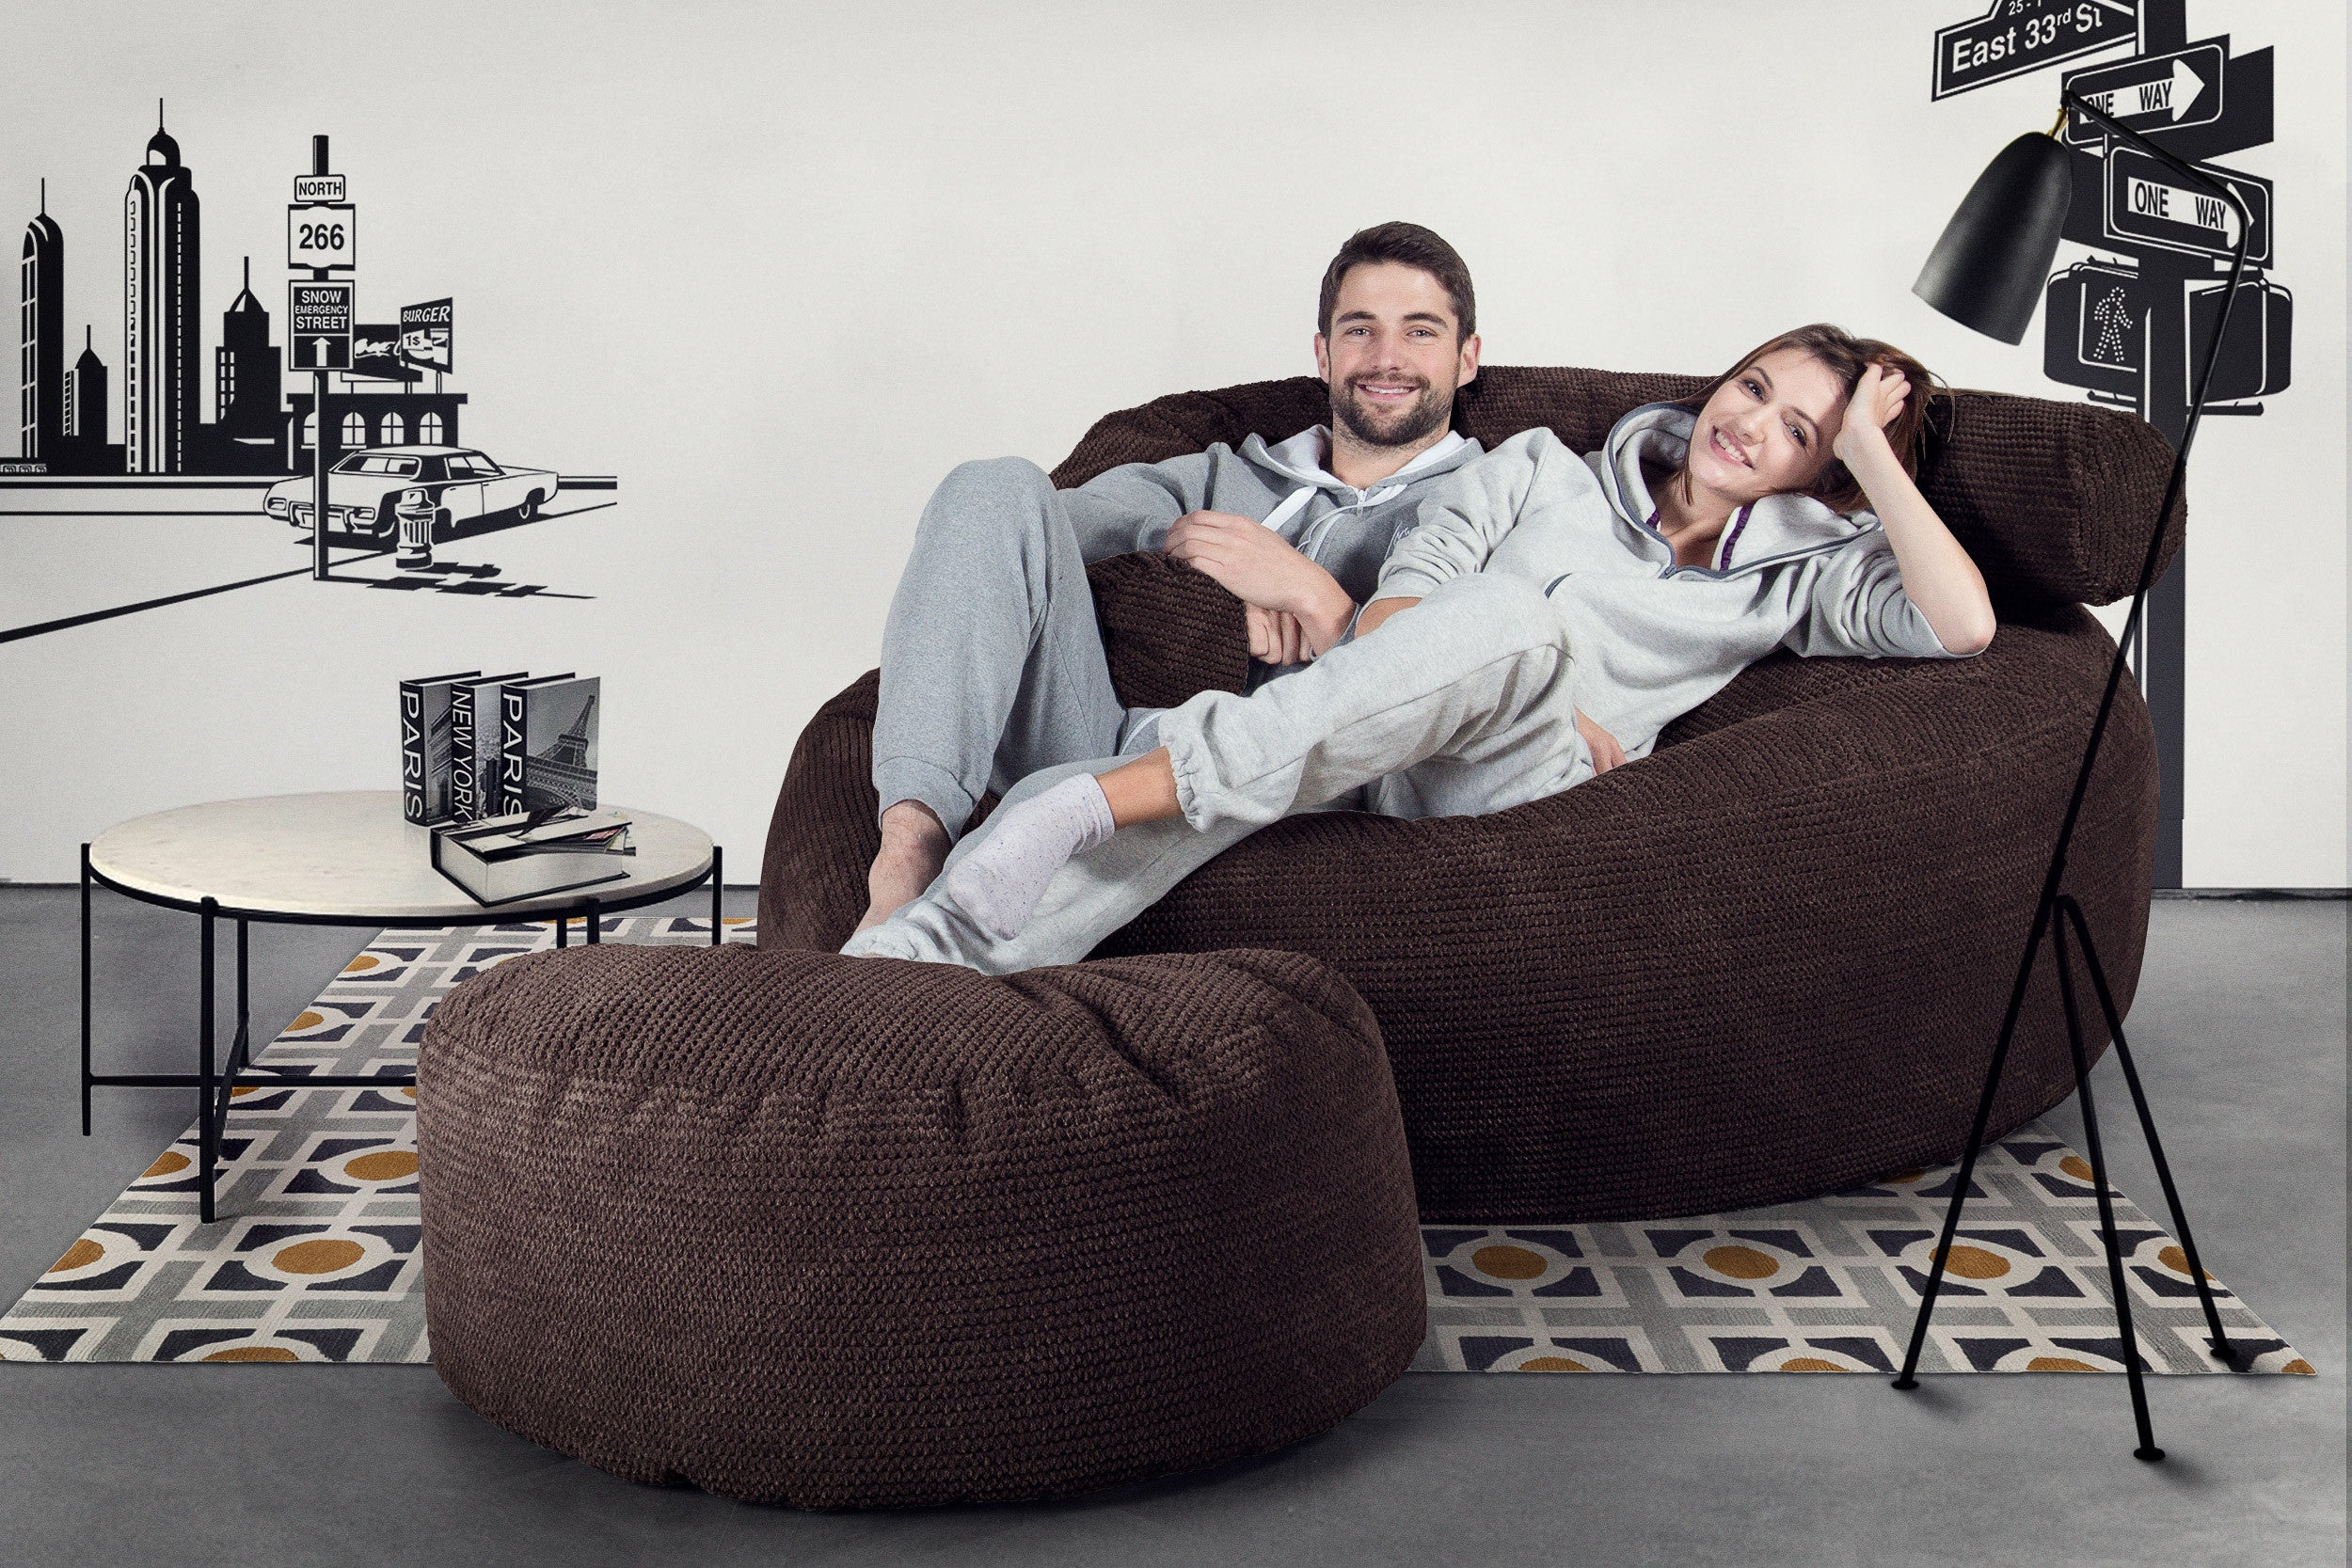 Mega Mammoth Bean Bag Sofa - Pom Pom Chocolate Brown